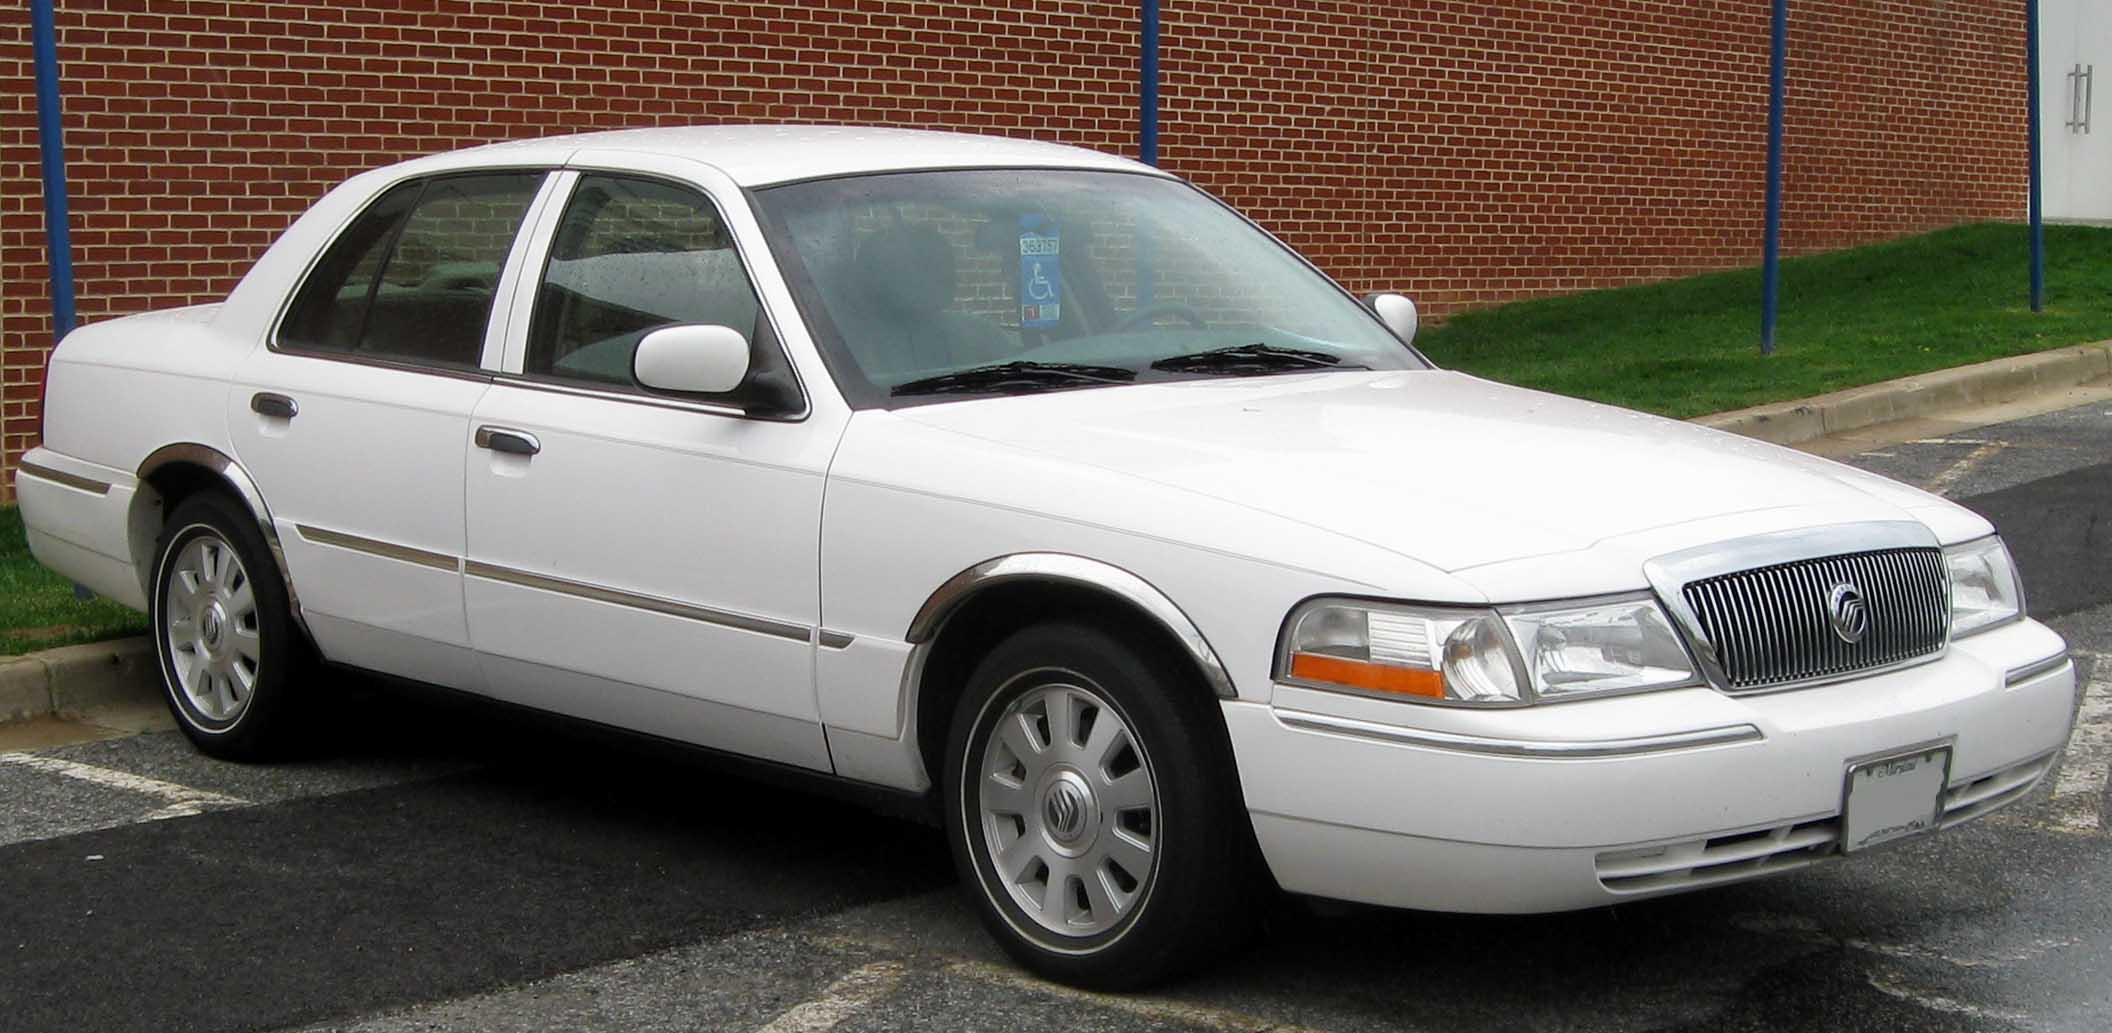 Cars mercury grand marquis #1